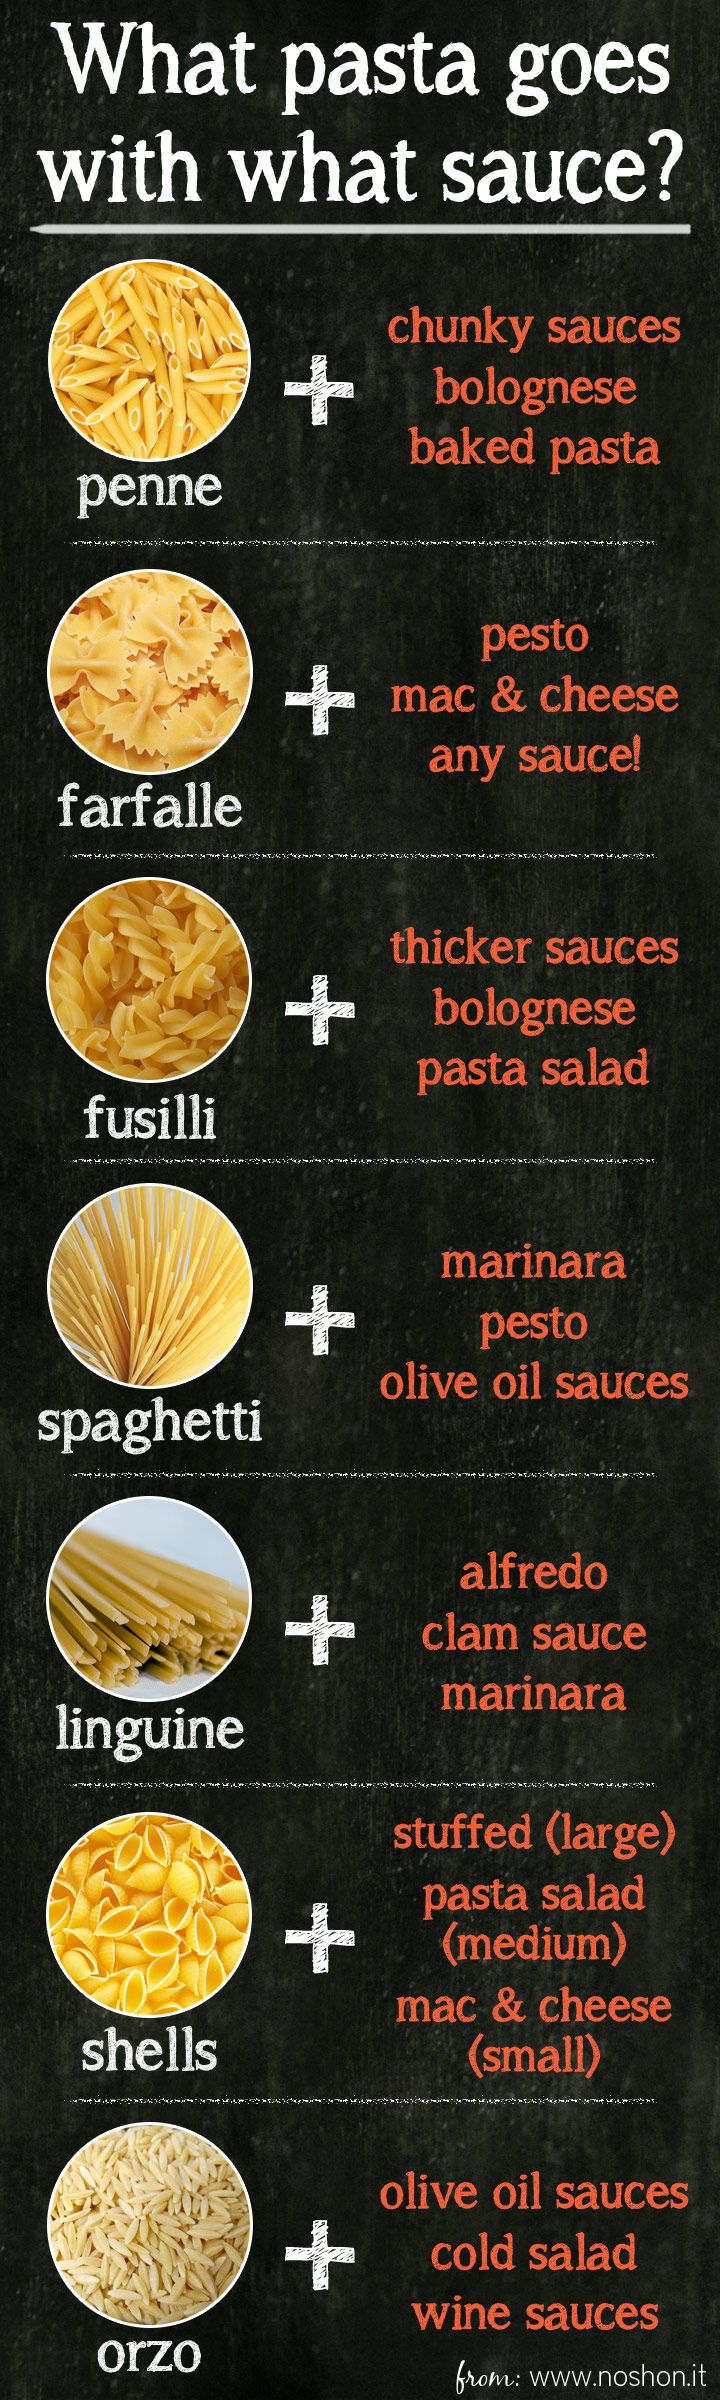 What pasta shapes go with what types of sauces? #FrancescoRinaldi pasta sauce!